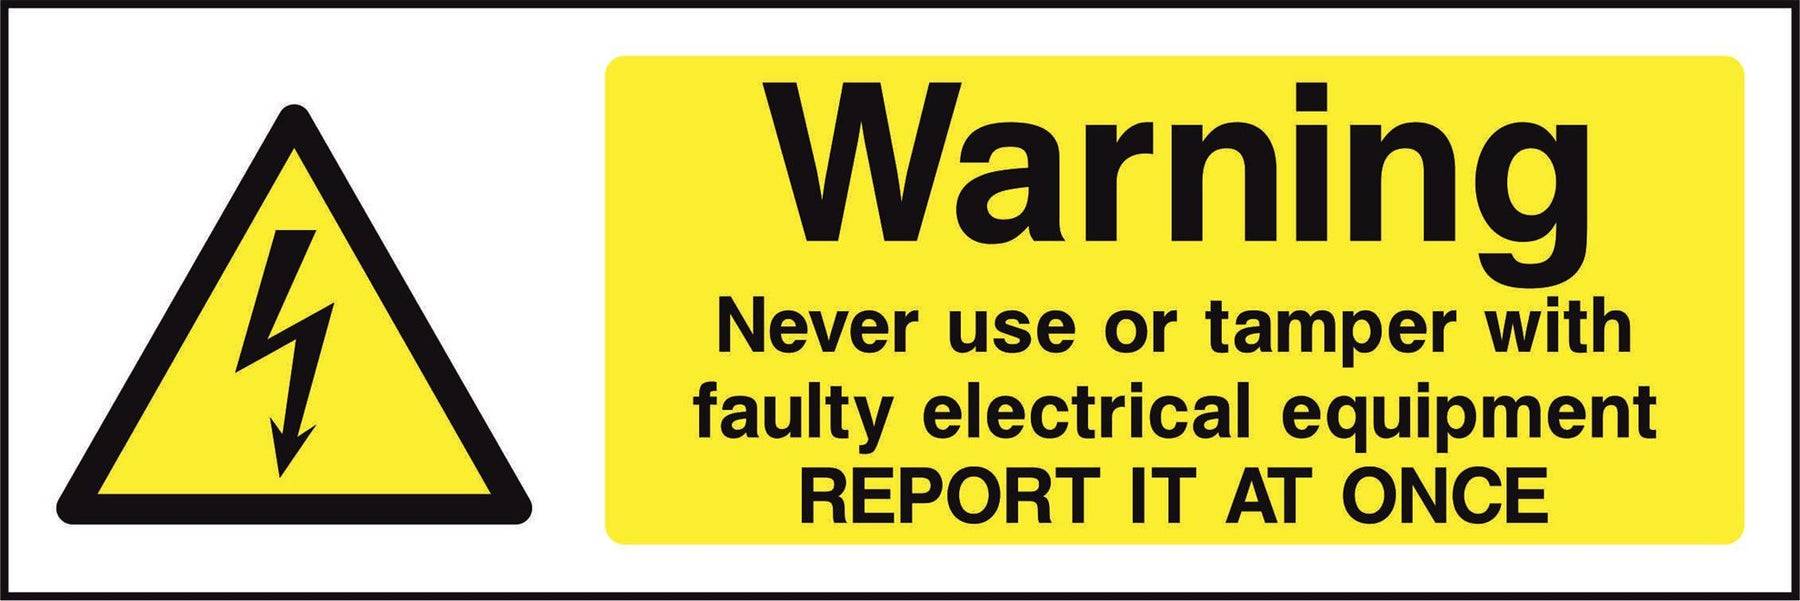 Warning Never use or tamper with faulty electrical equipment